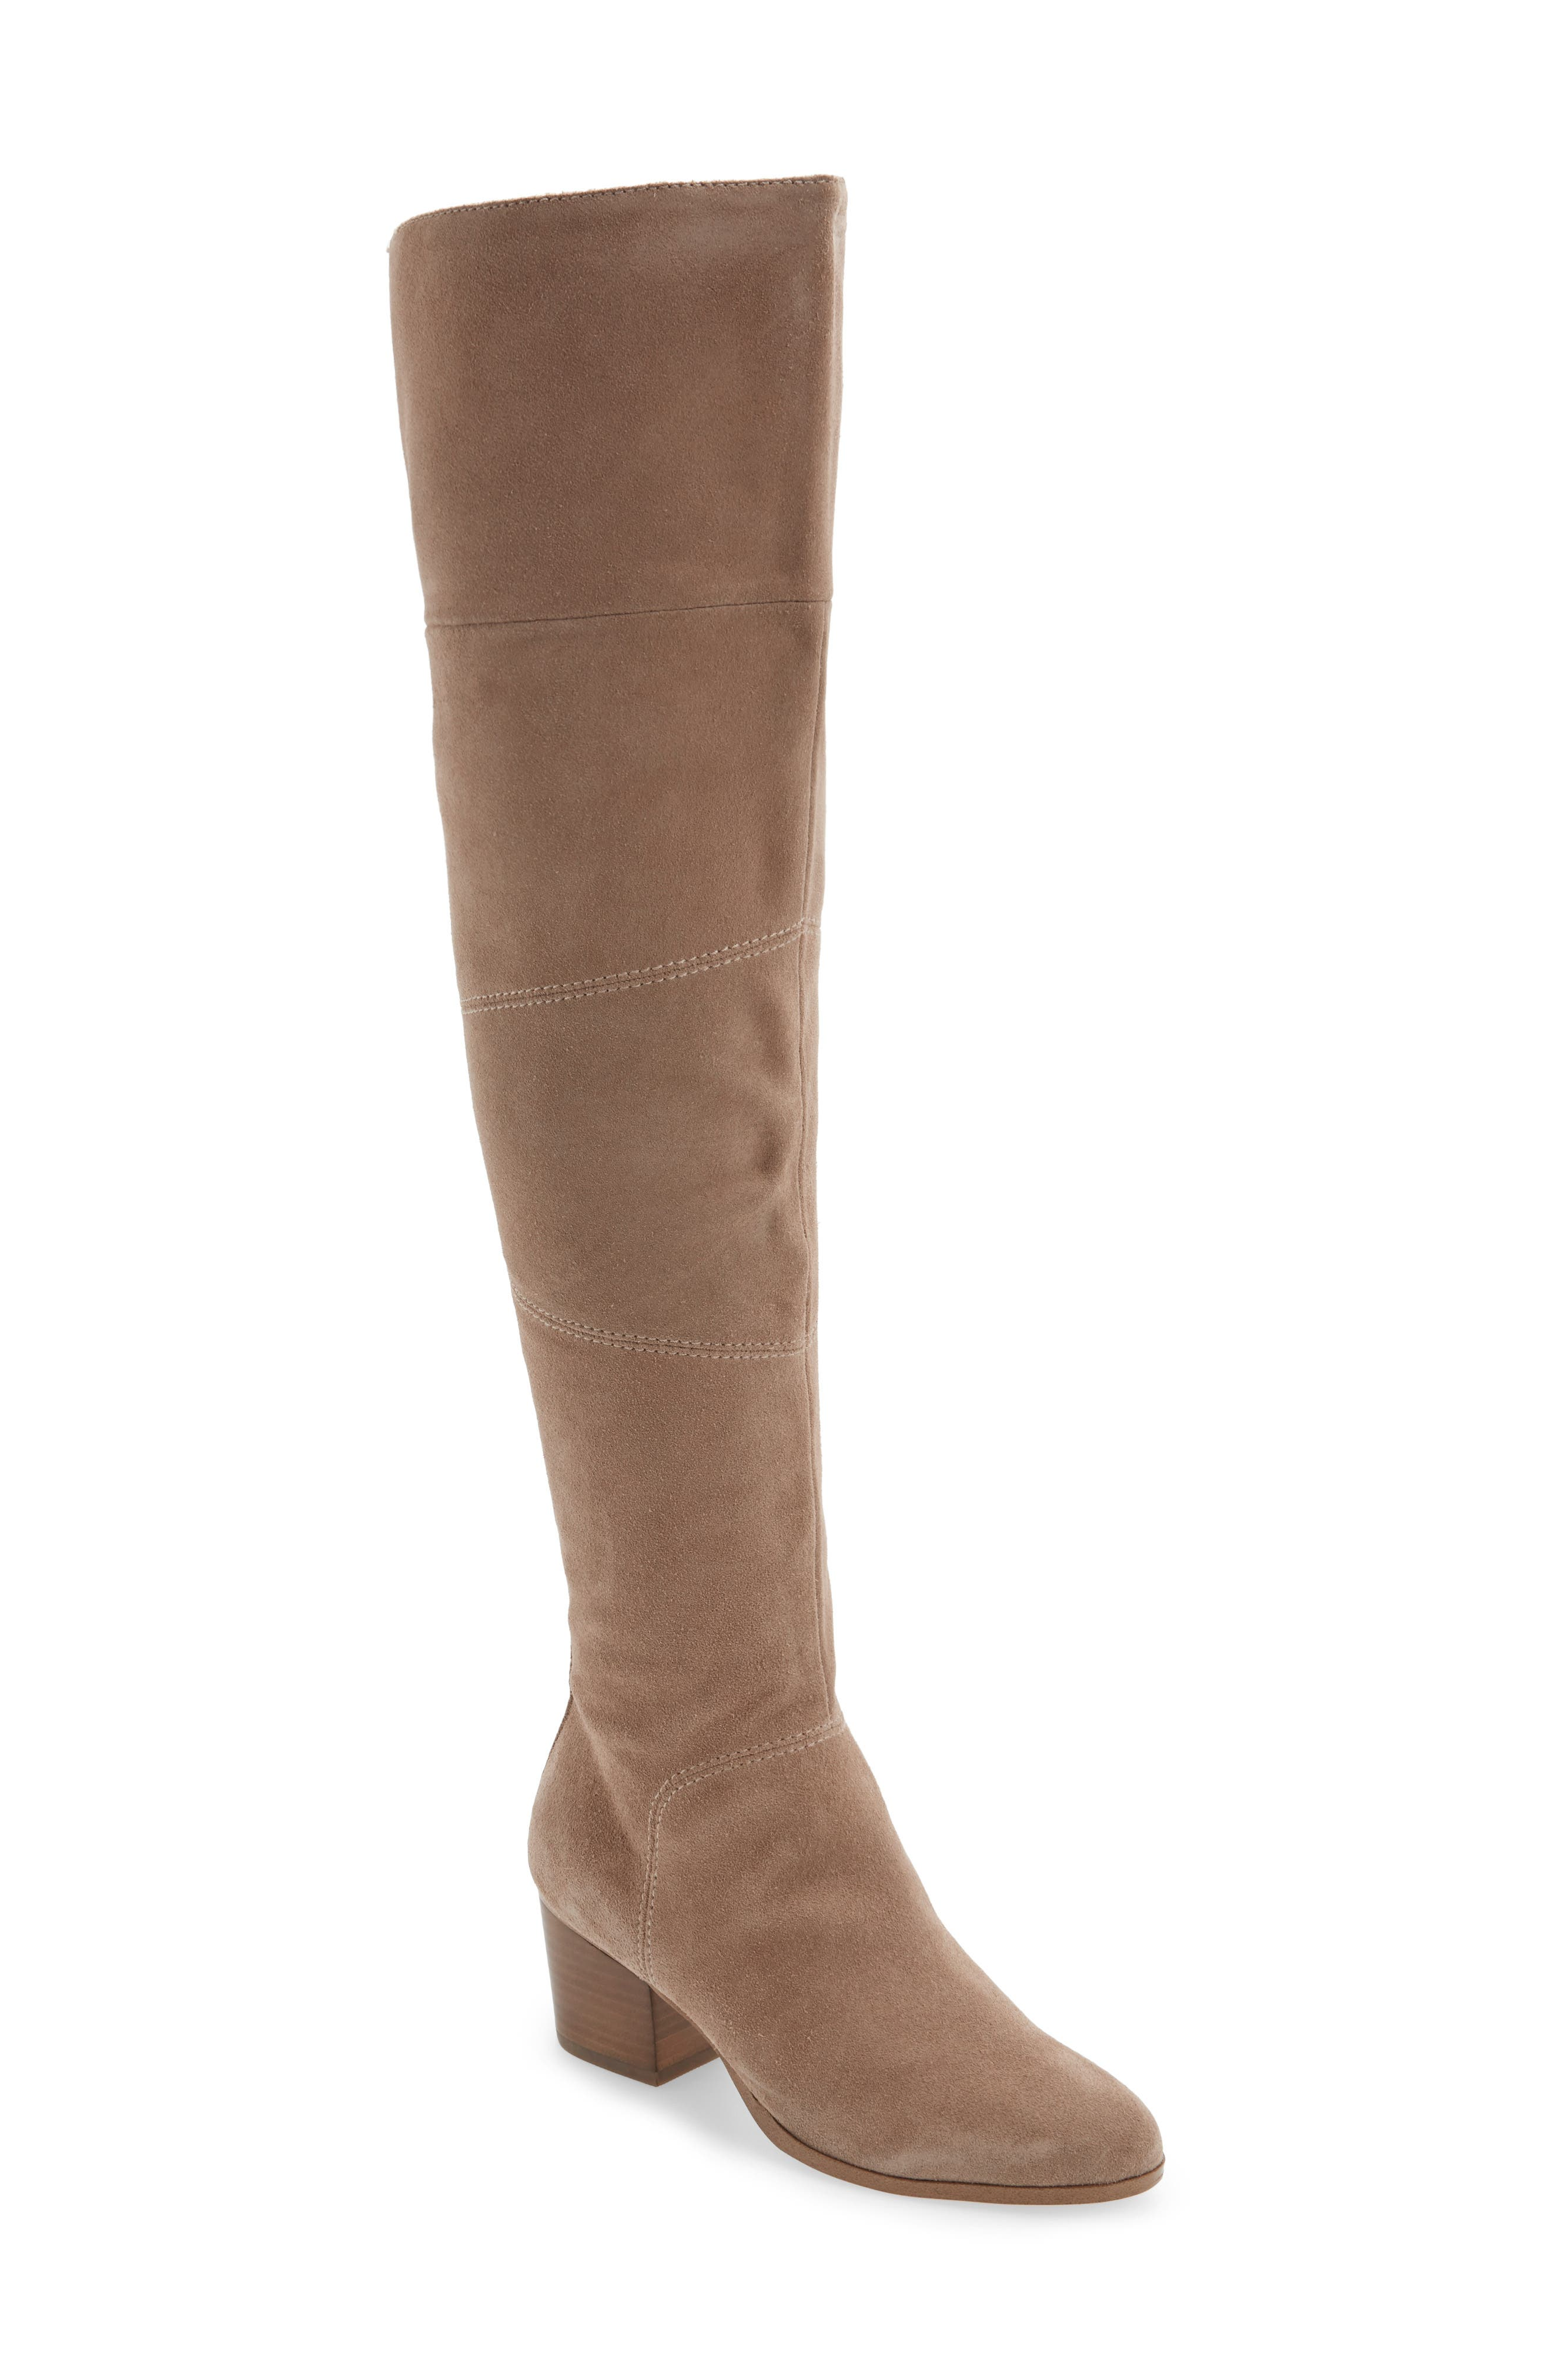 Melbourne Over the Knee Boot,                         Main,                         color, Night Taupe Suede